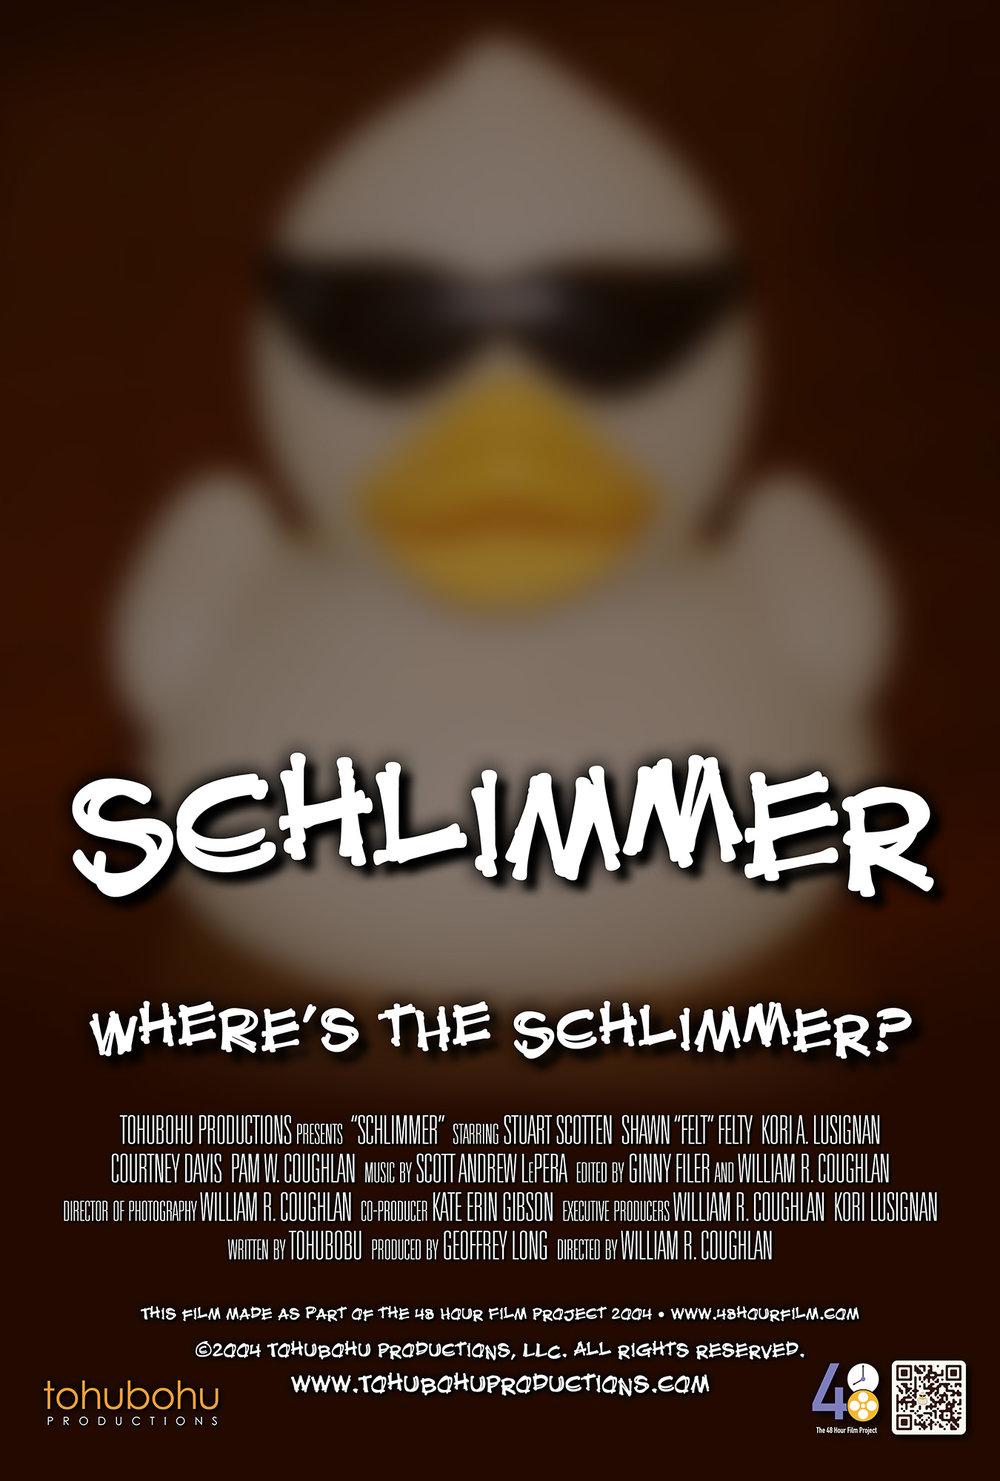 "Schlimmer - 2004 · 8:12 · written by Tohubohu · produced by Geoffrey long · directed by William R. CoughlanSebastian is eager to show off his latest acquisition to a cadre of eccentric — and soon-to-be-jealous — art collectors, even hiring his photographer nephew to capture the unveiling for posterity. But when the ""Schlimmer"" turns up missing, accusations of theft begin flying, and long-simmering resentments begin to undermine the group's cohesion.""Schlimmer"" — a mystery — was made as part of the 48 Hour Film Project 2004. The entire piece was created over the weekend of May 7–9, 2004, and first screened at the AFI Silver Theatre on Friday, May 14."